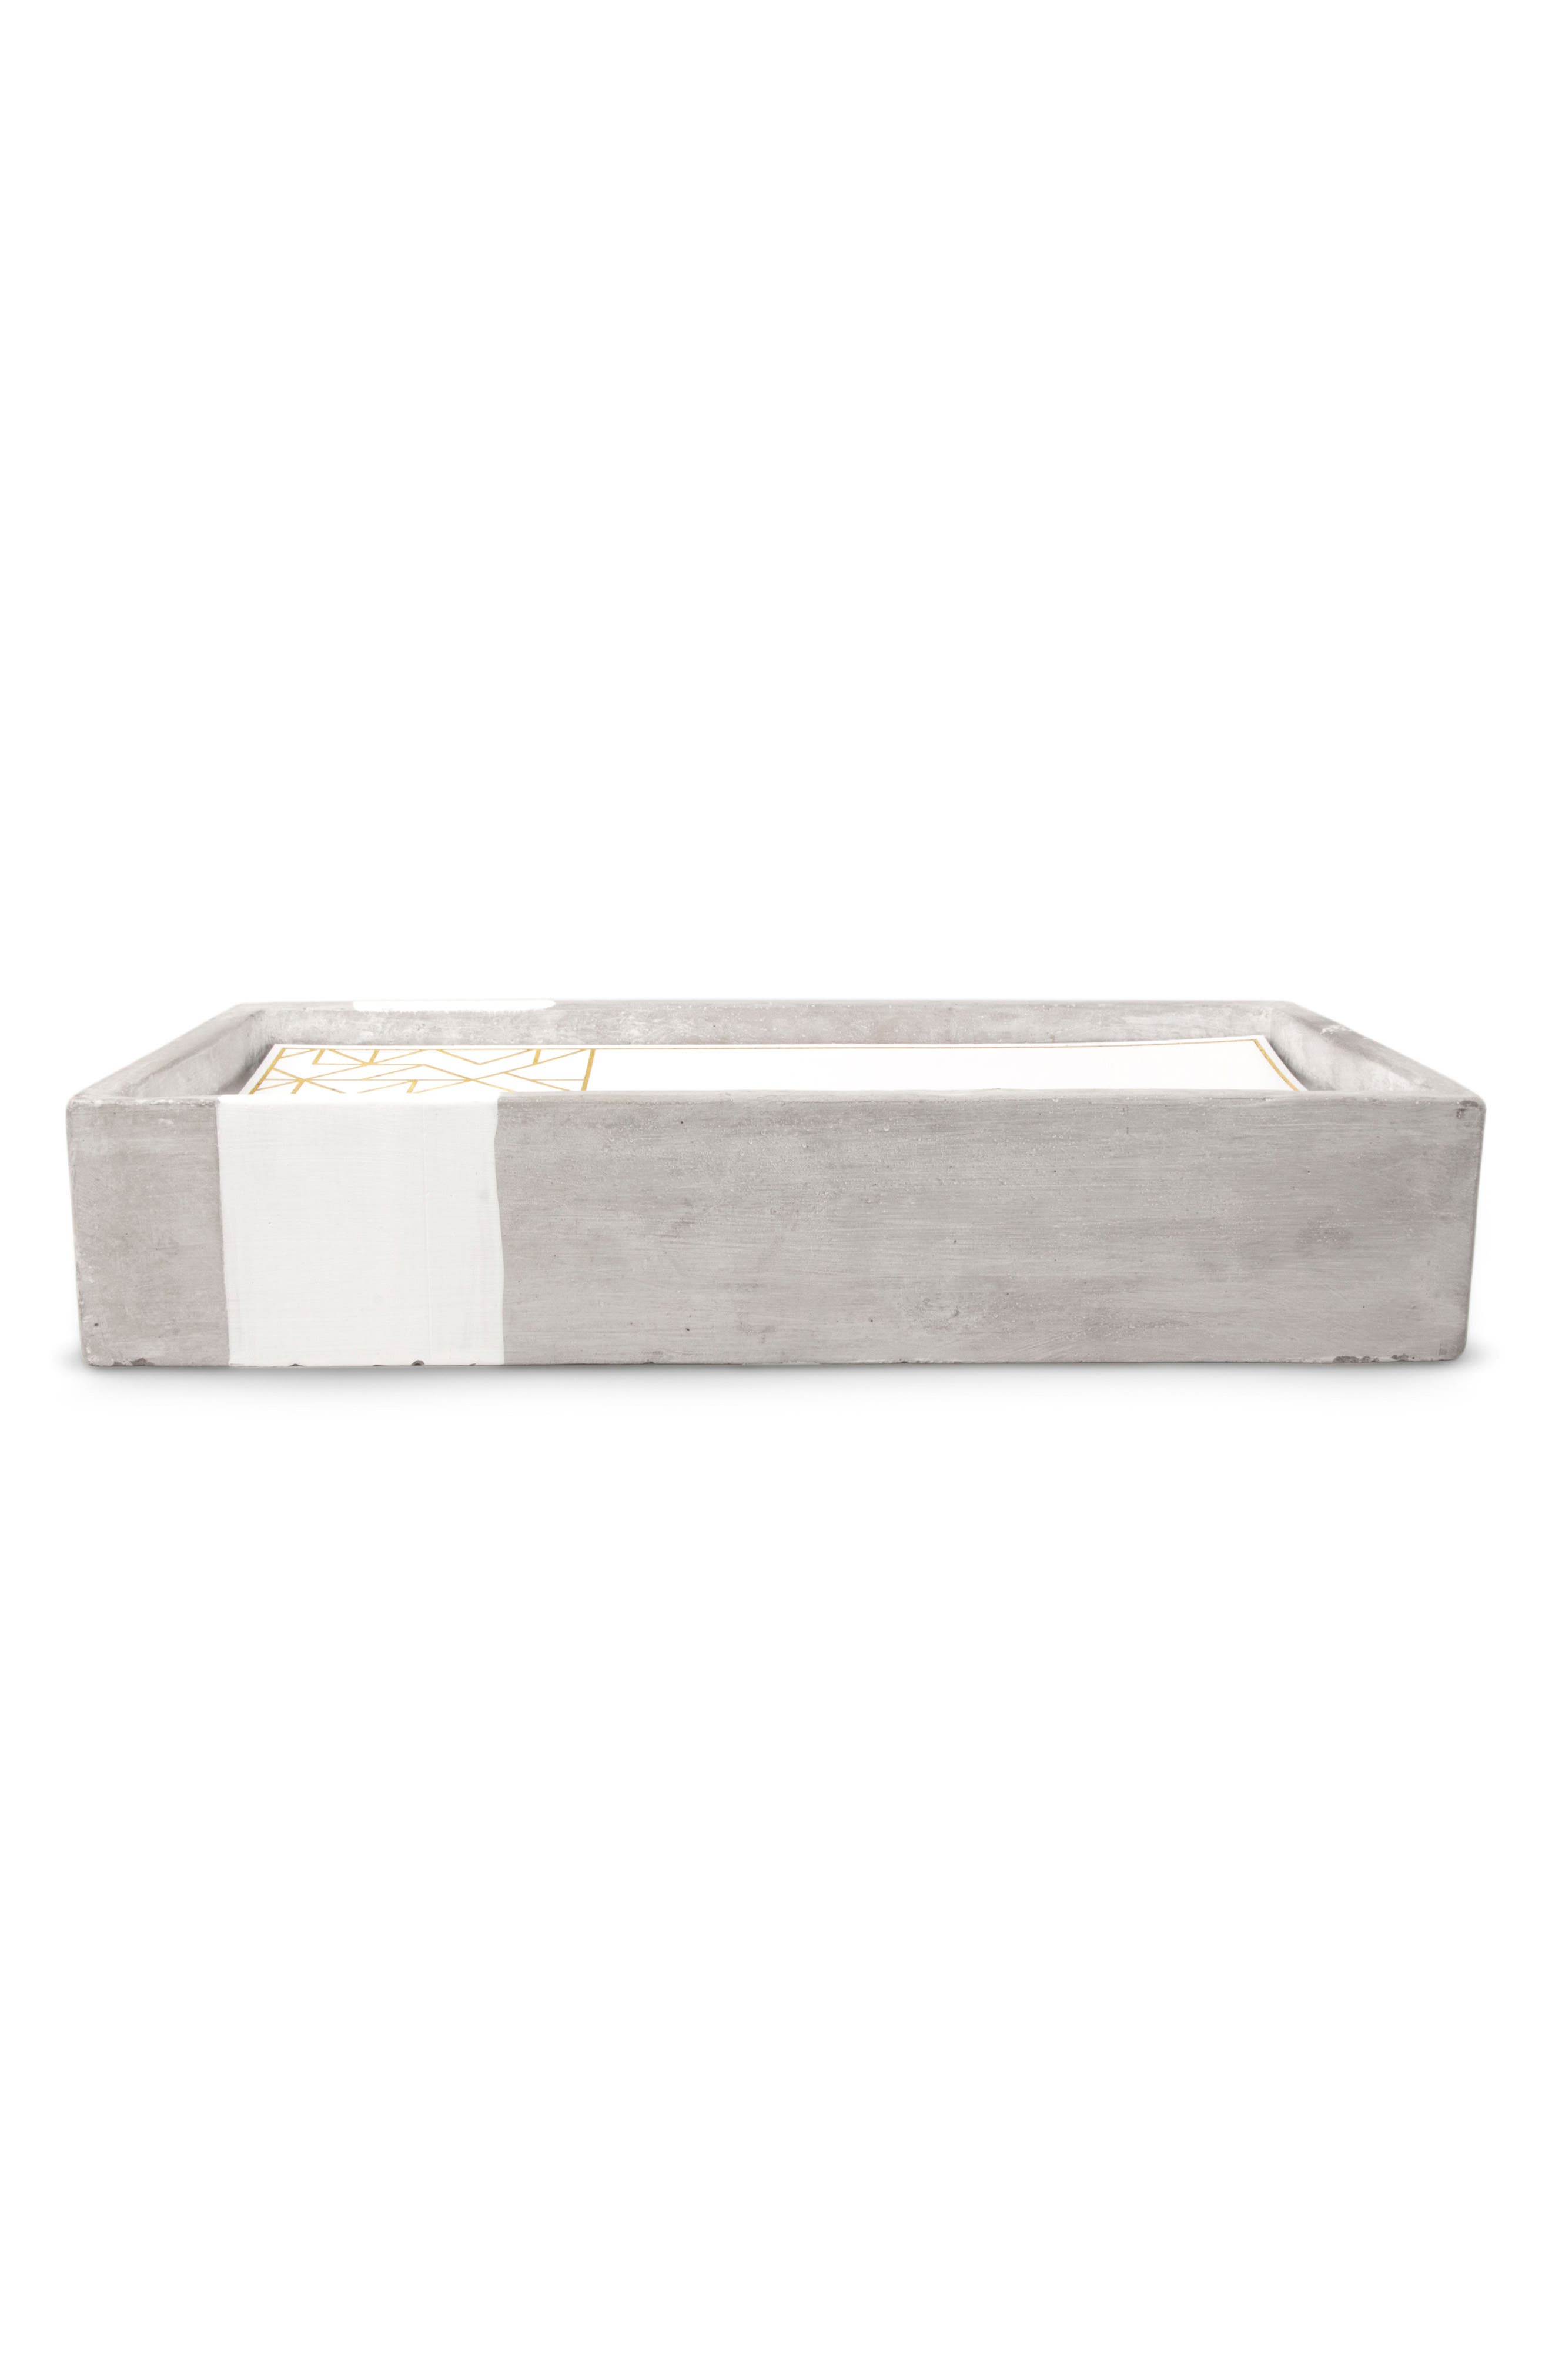 Alternate Image 2  - Paddywax Urban Concrete Soy Wax Candle